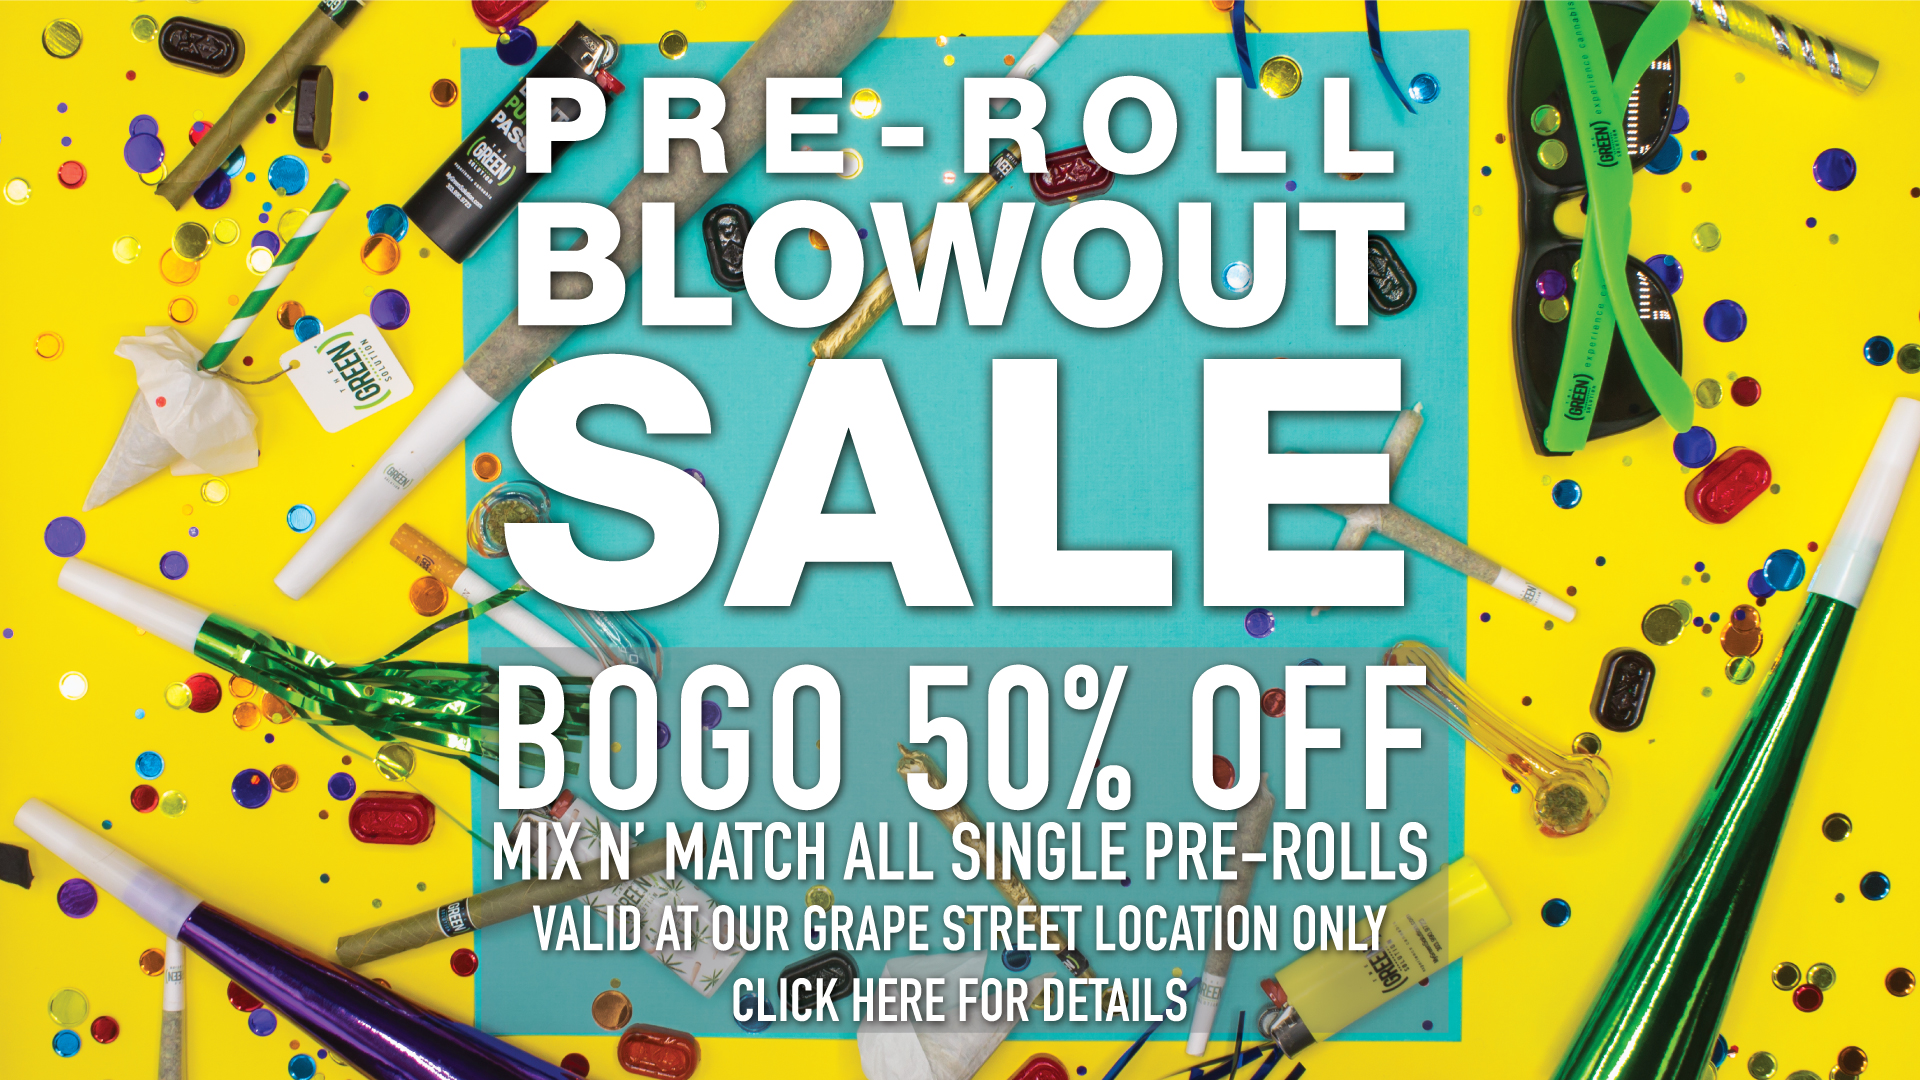 Pre-Roll Blowout at The Green Solution Grape St location!